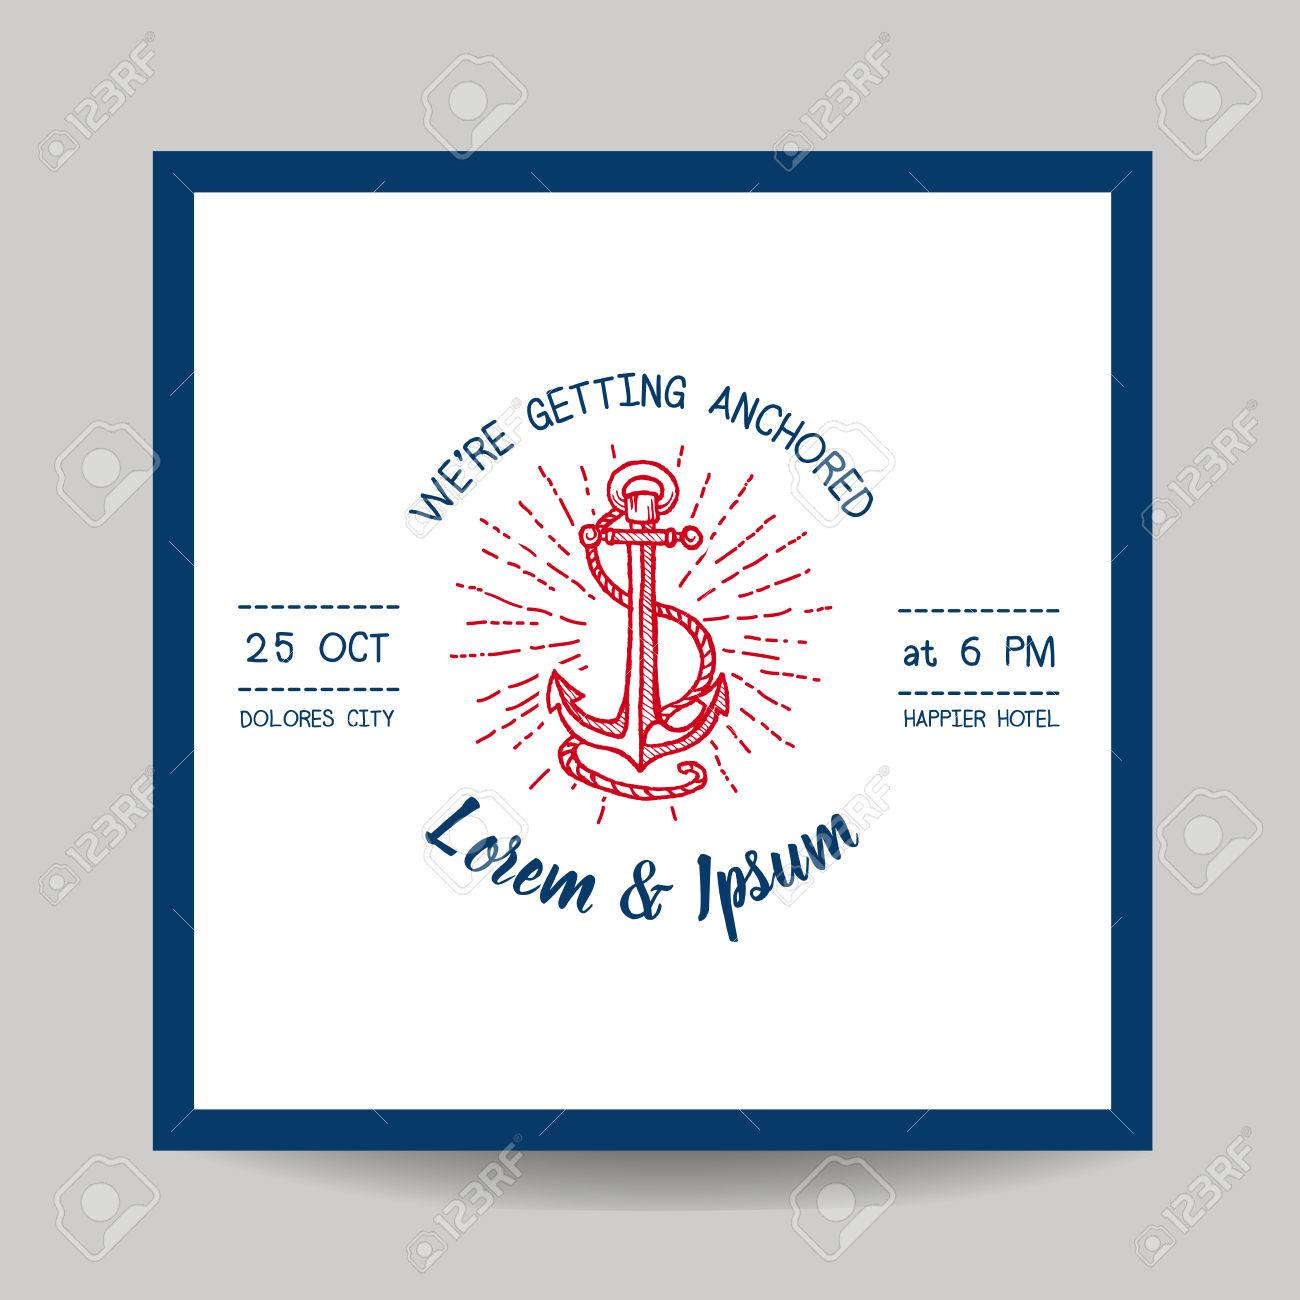 Wedding Invitation Card - Save The Date - Marine Anchor Theme ...